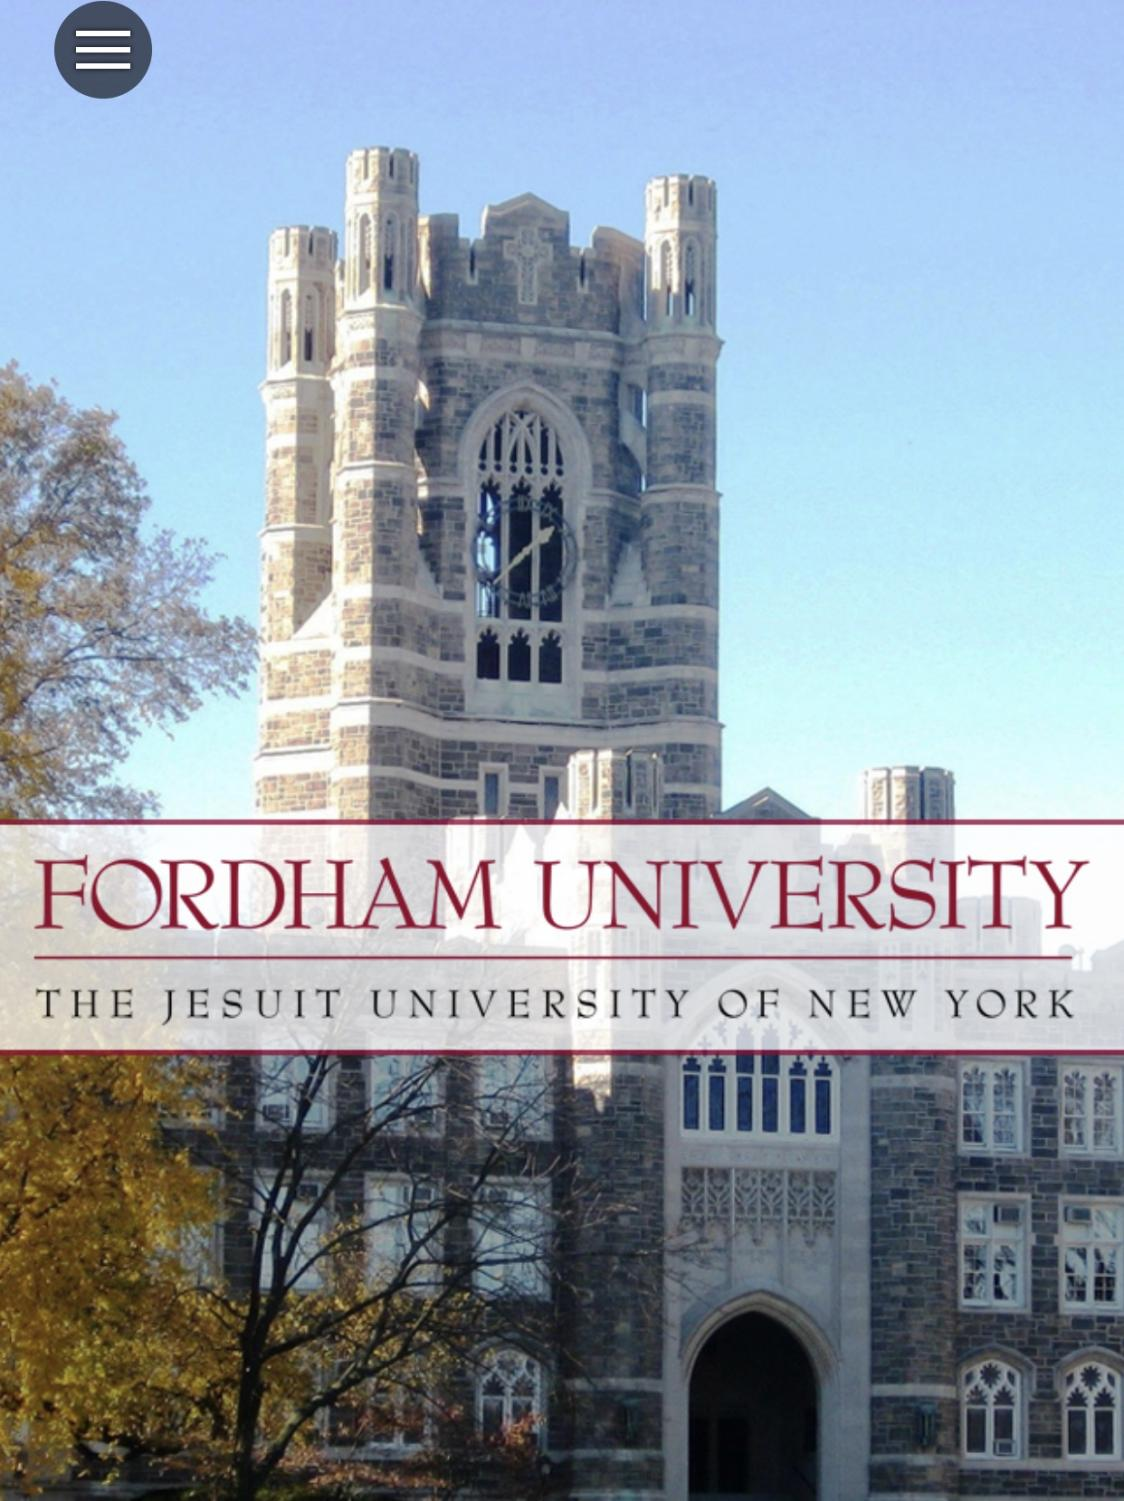 App-athy: With so many Fordham apps, it is up to students to determine which ones are the most useful.